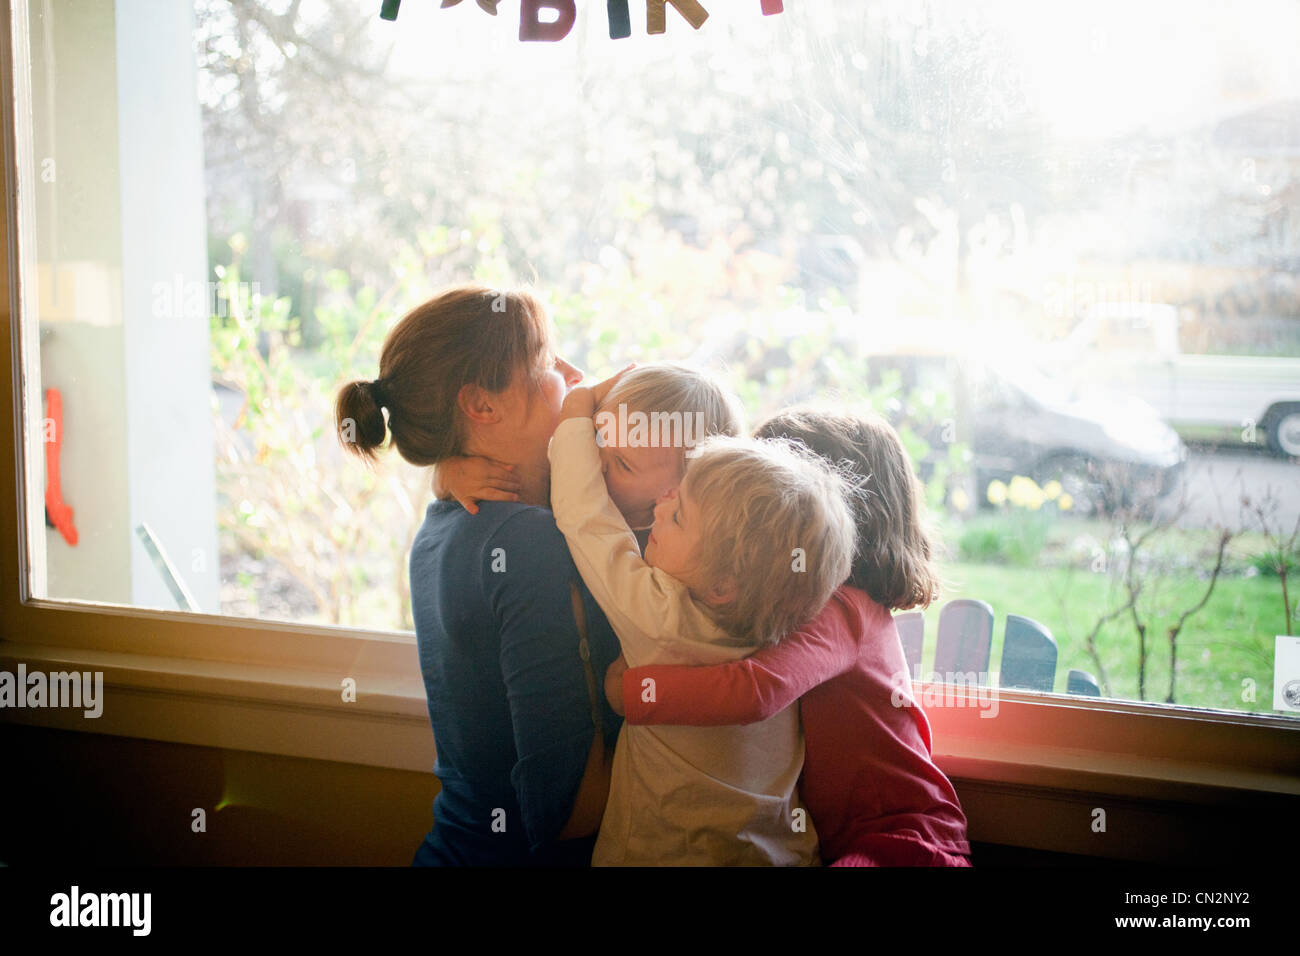 Mother embracing three children - Stock Image